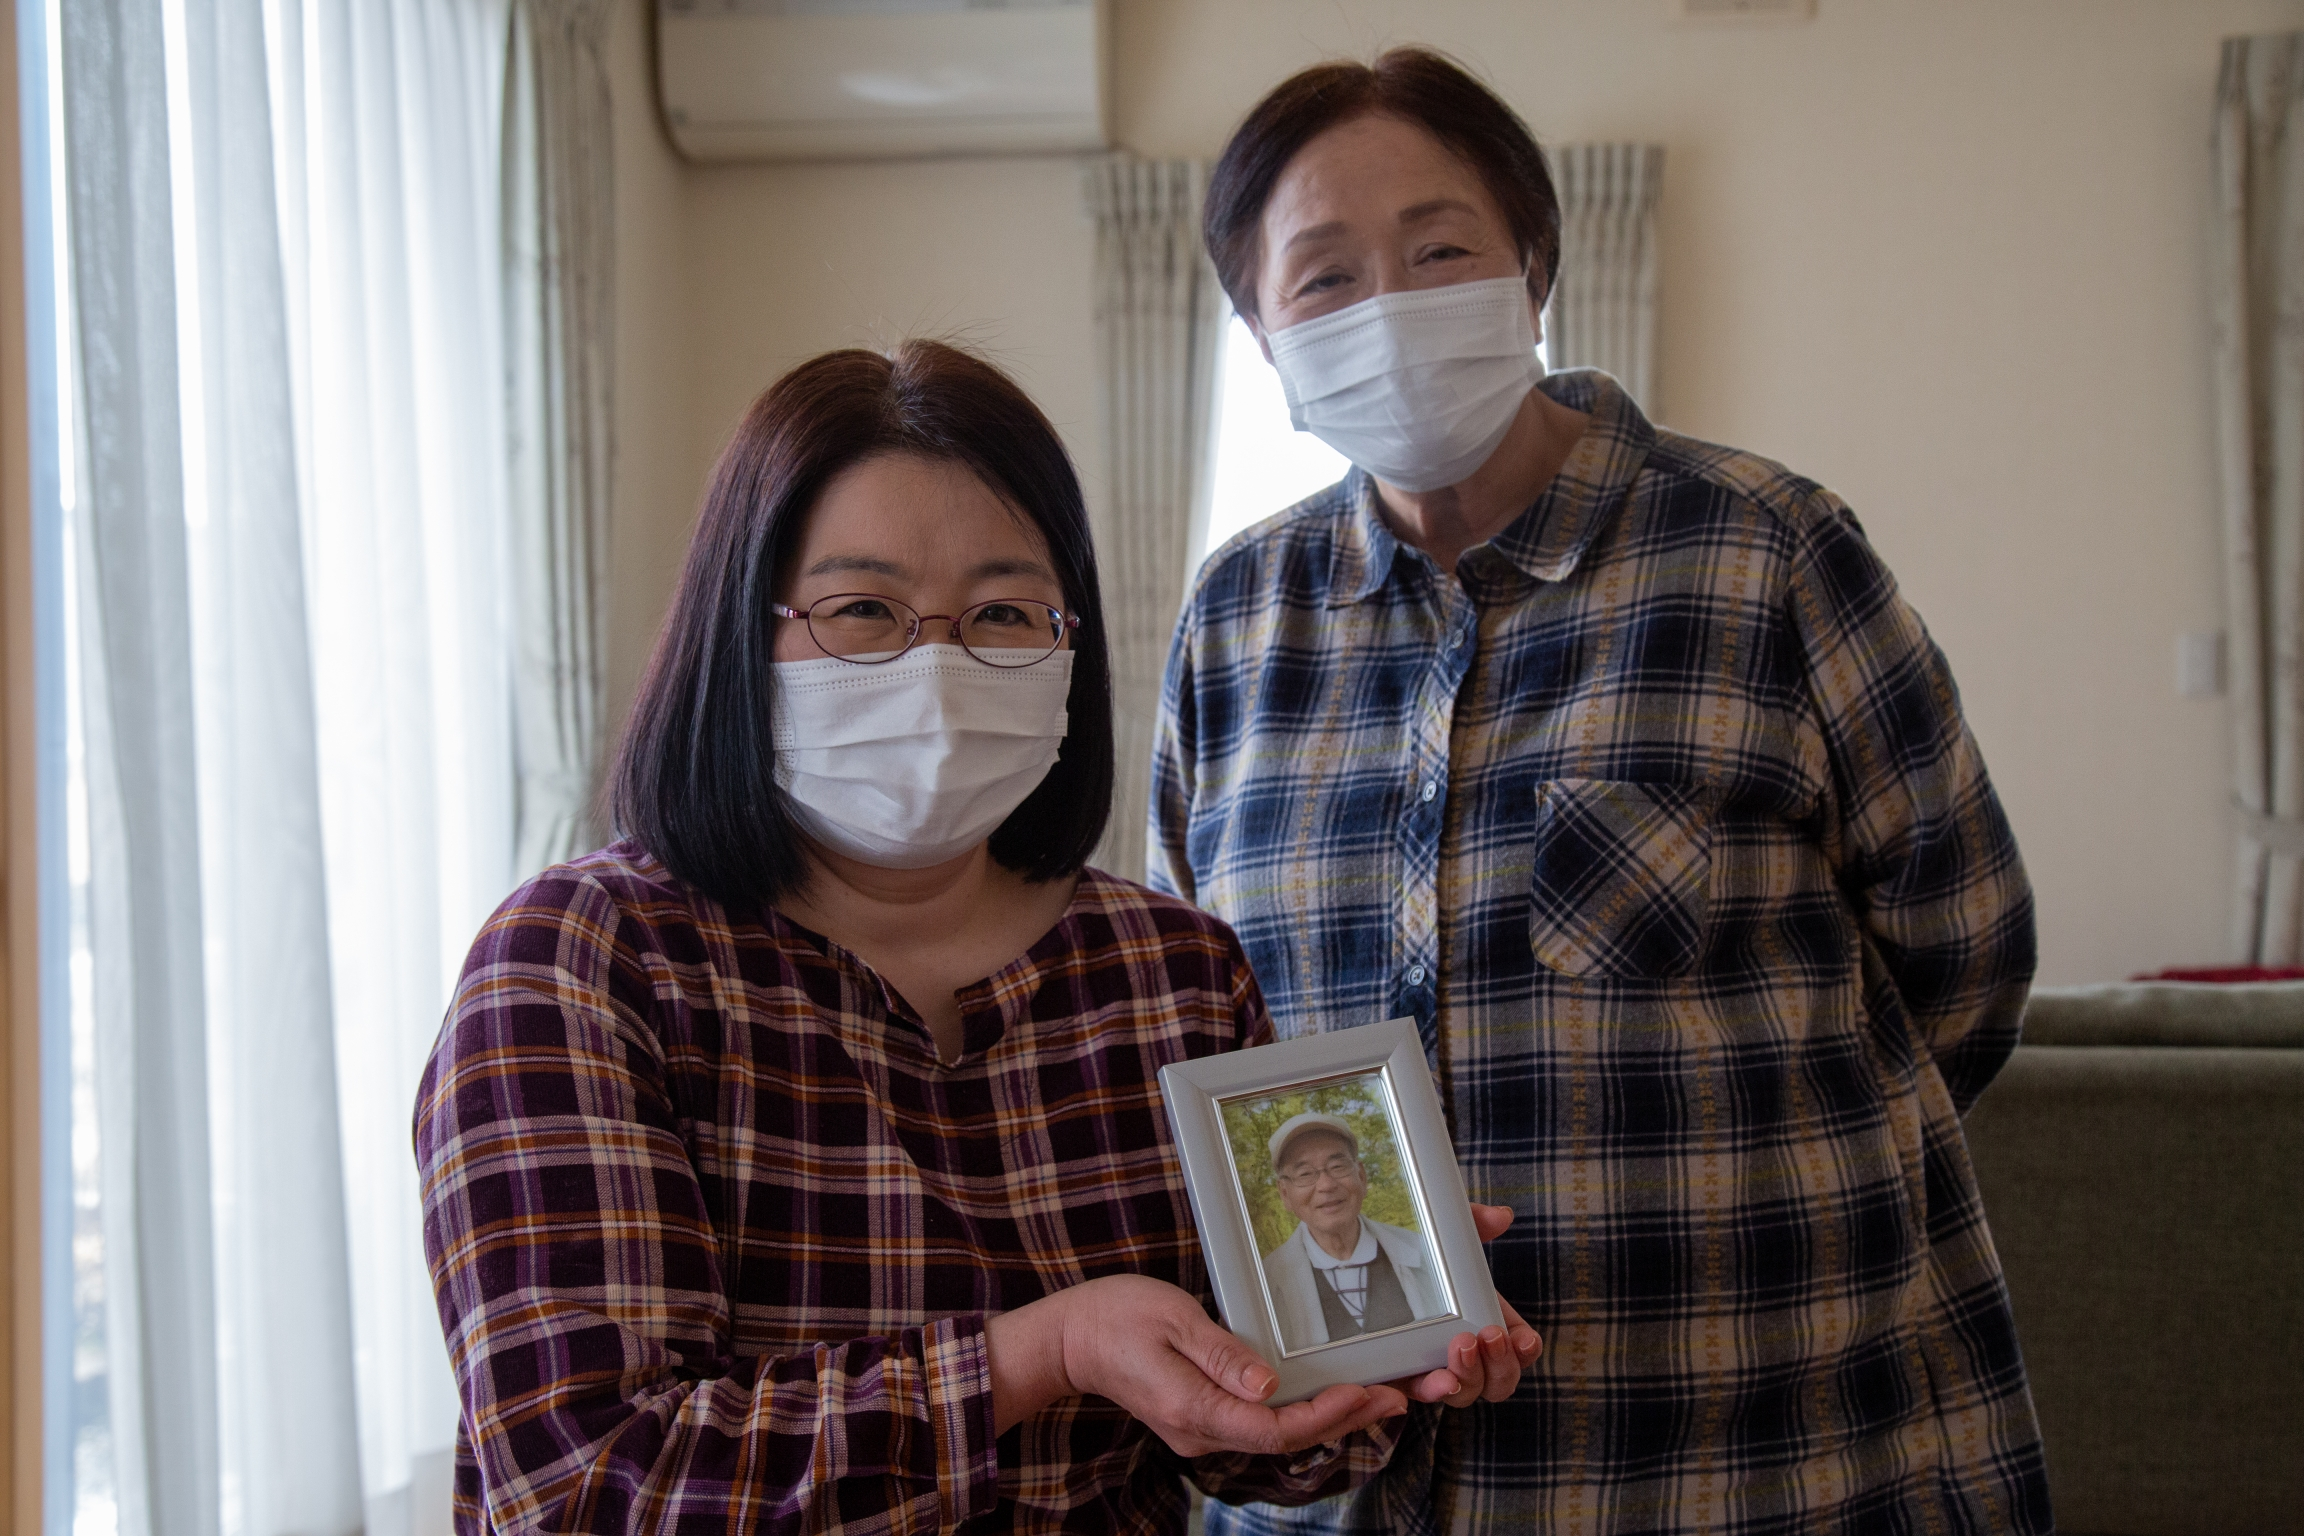 Two women are shown next two each other, both wearing medical face masks and one holding a small framed photograph.